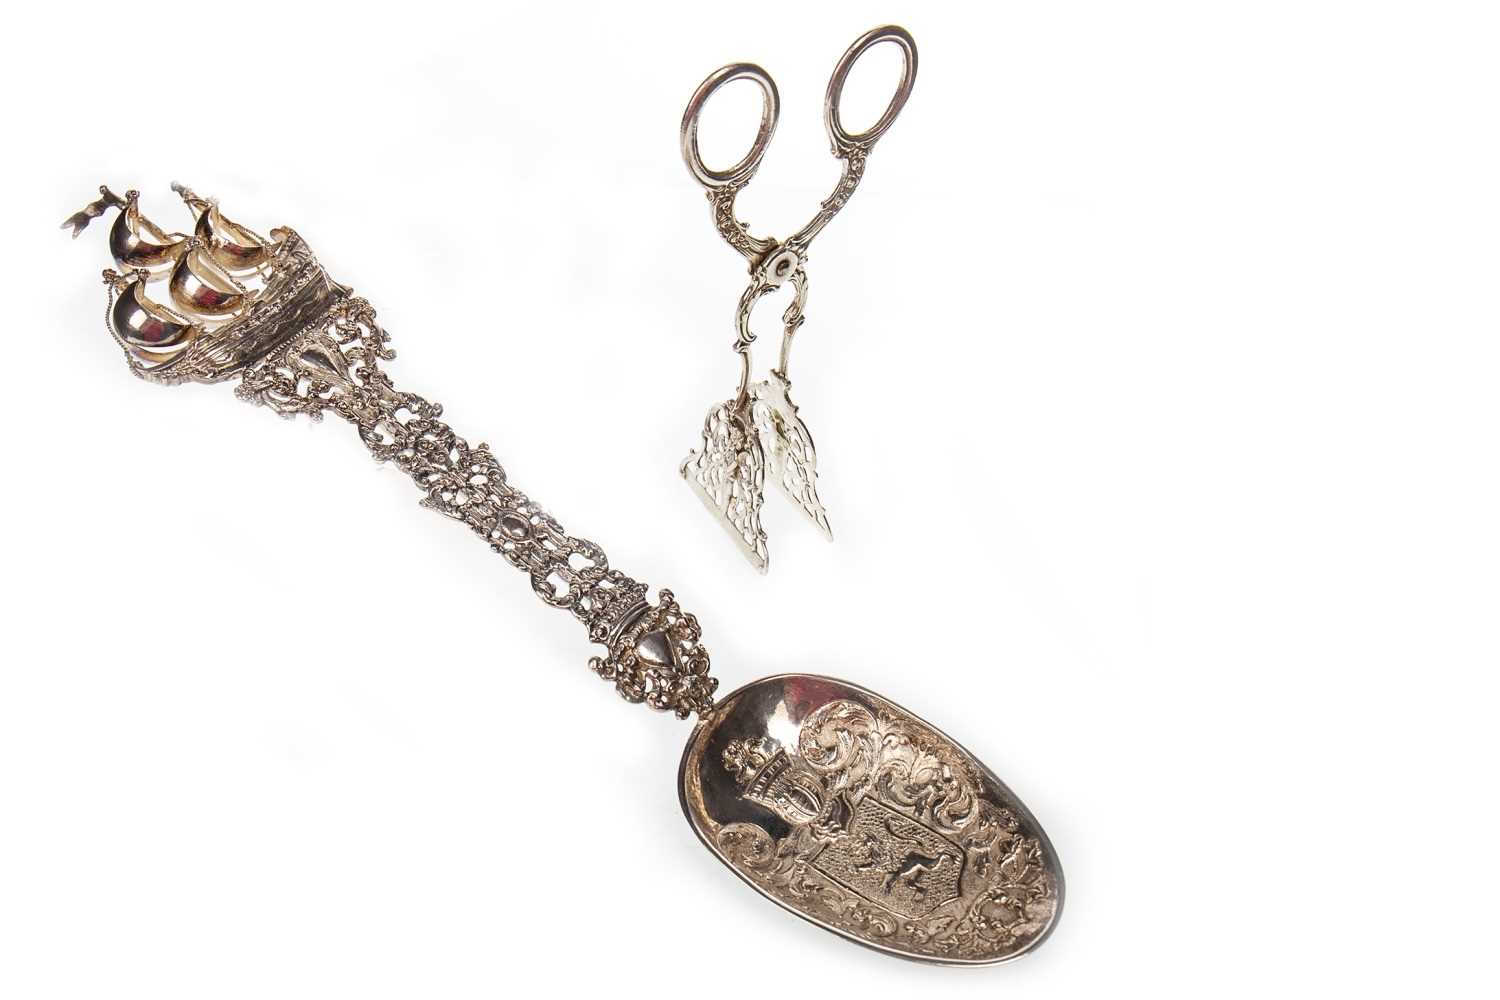 Lot 804-A CONTINENTAL SILVER ANOINTING SPOON WITH A PAIR OF SUGAR NIPS